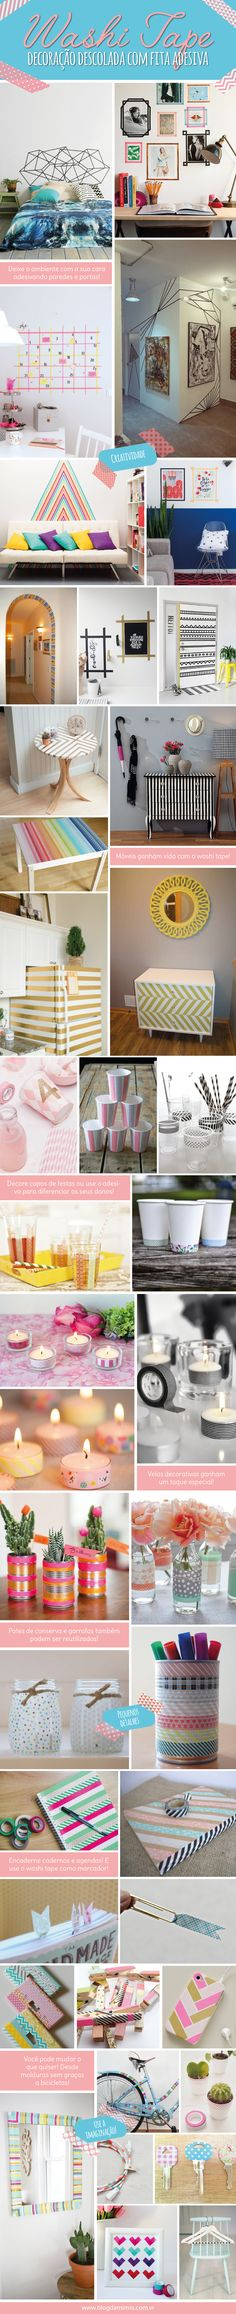 washi-tape-blog-da-mimis-michelle-franzoni-post